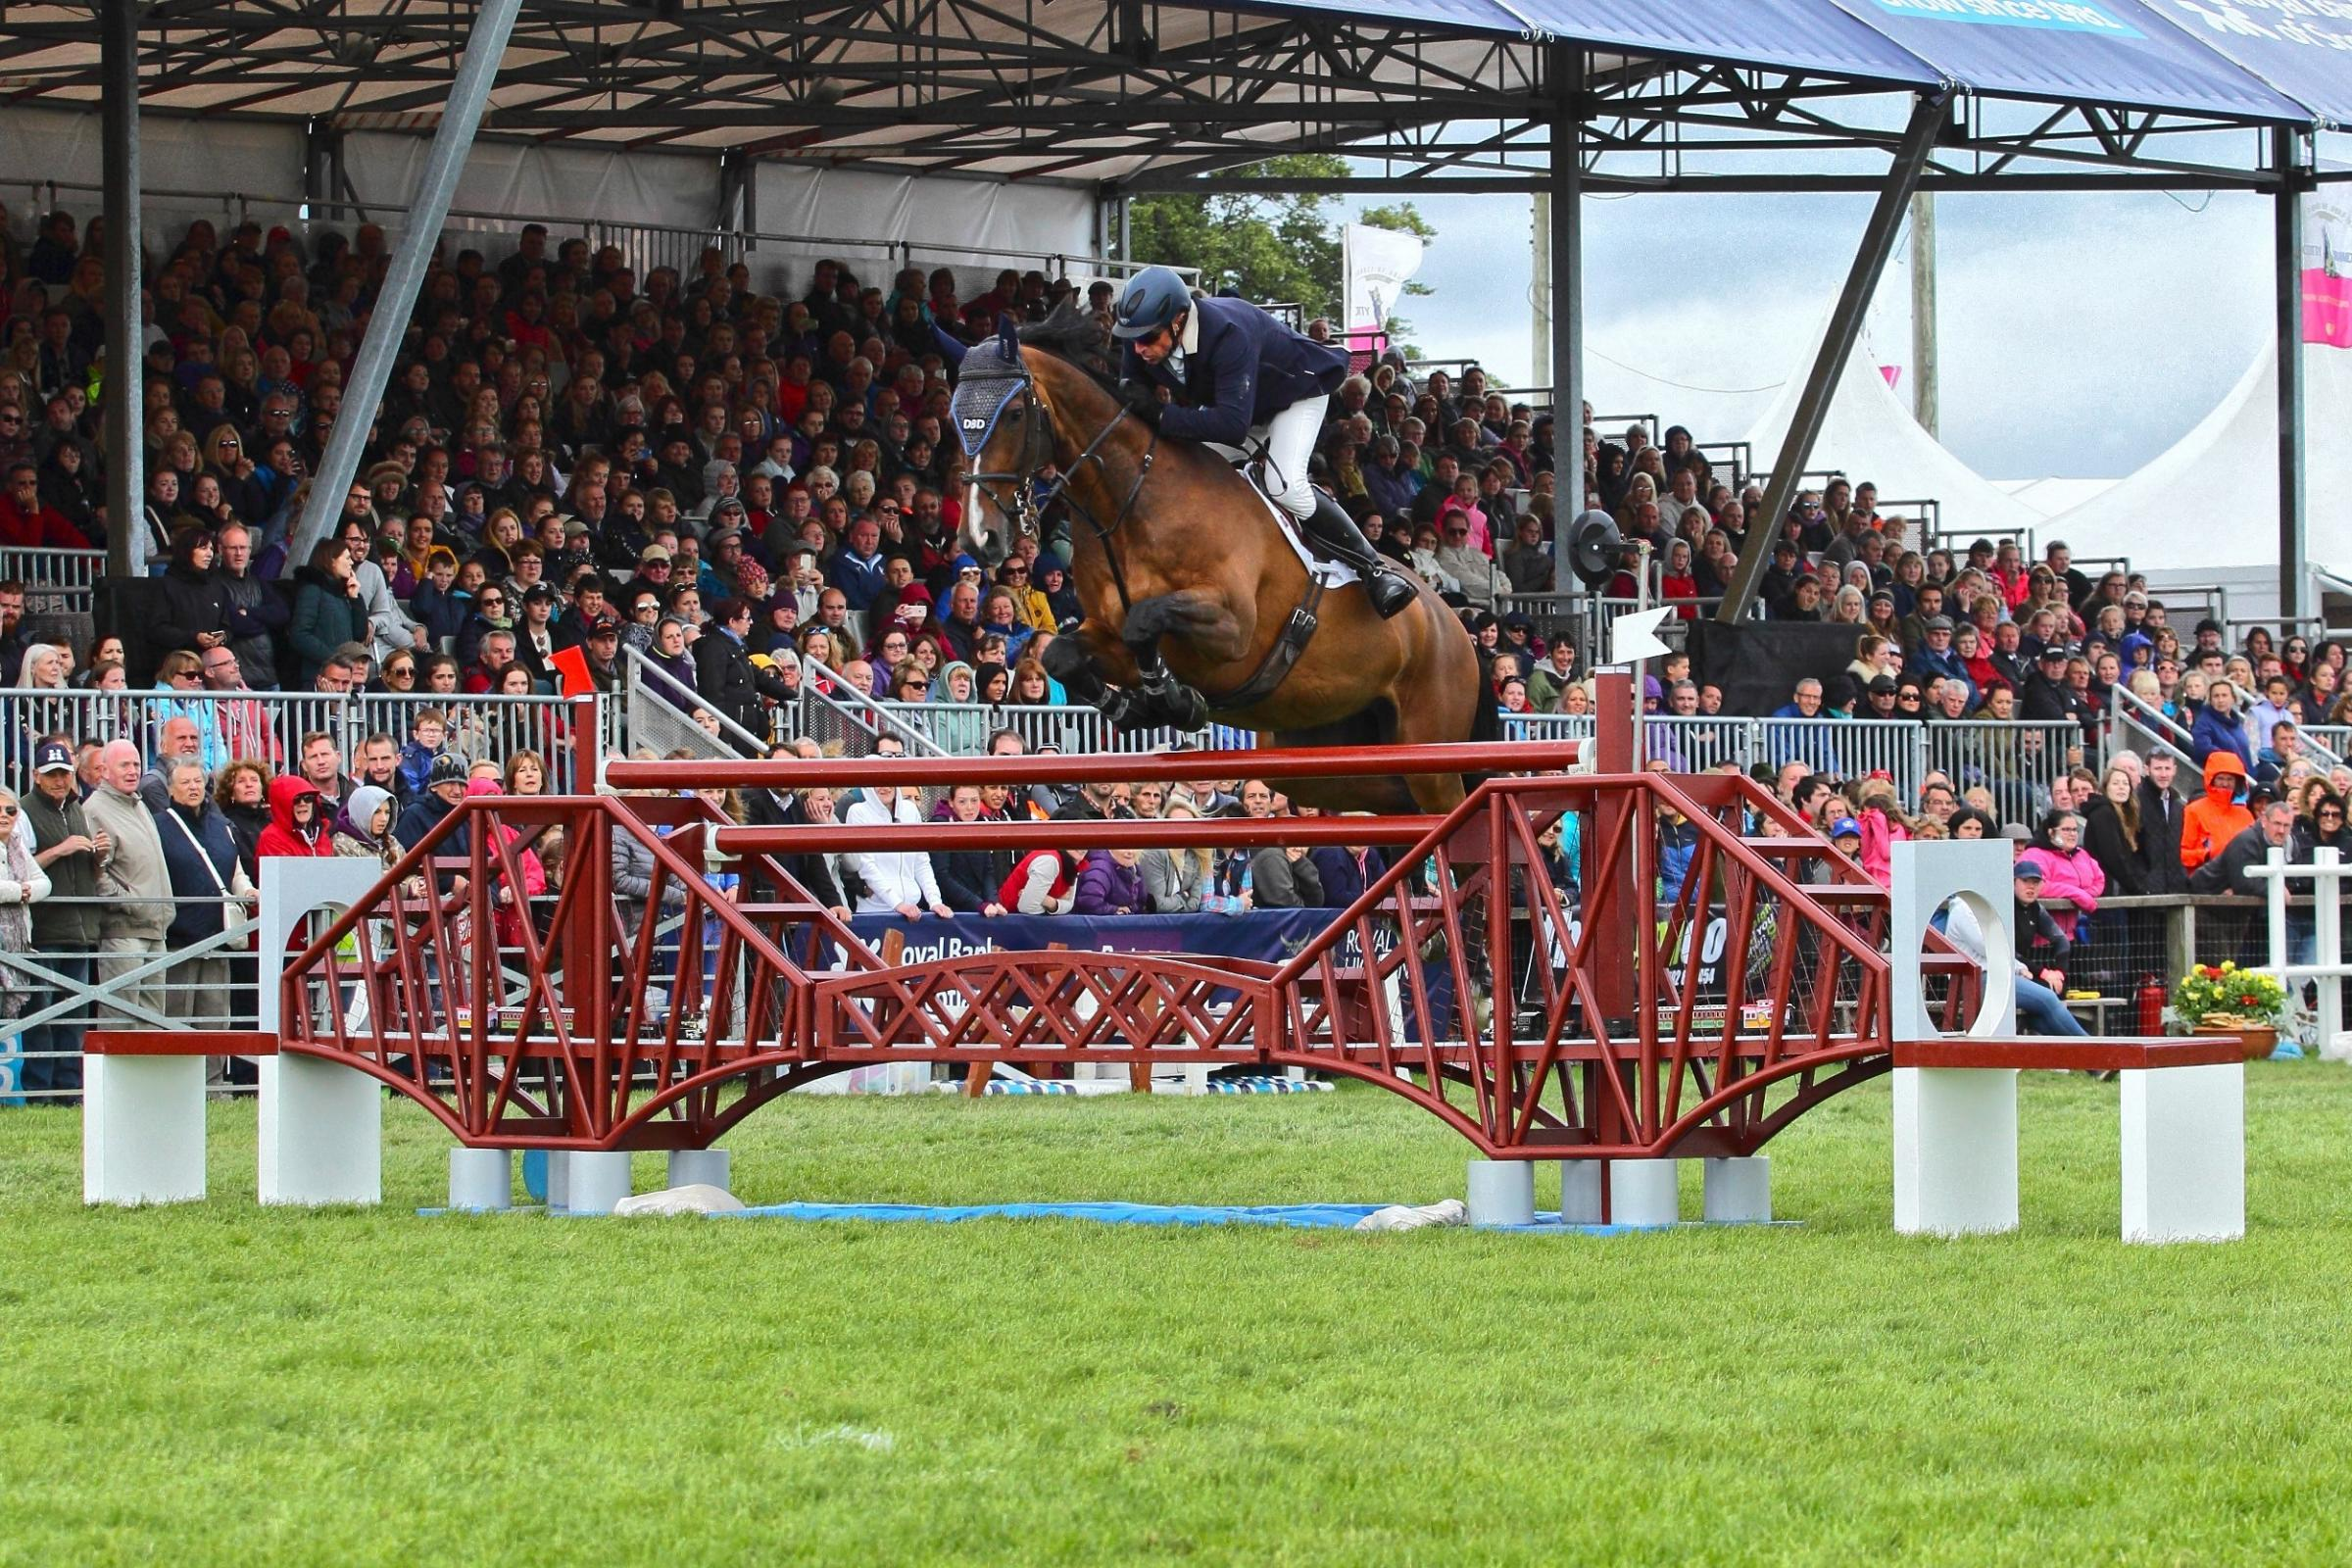 GRAND PRIX showjumping is a highlight of many spectators Royal Highland Show (Photo: Sinclair Photography)